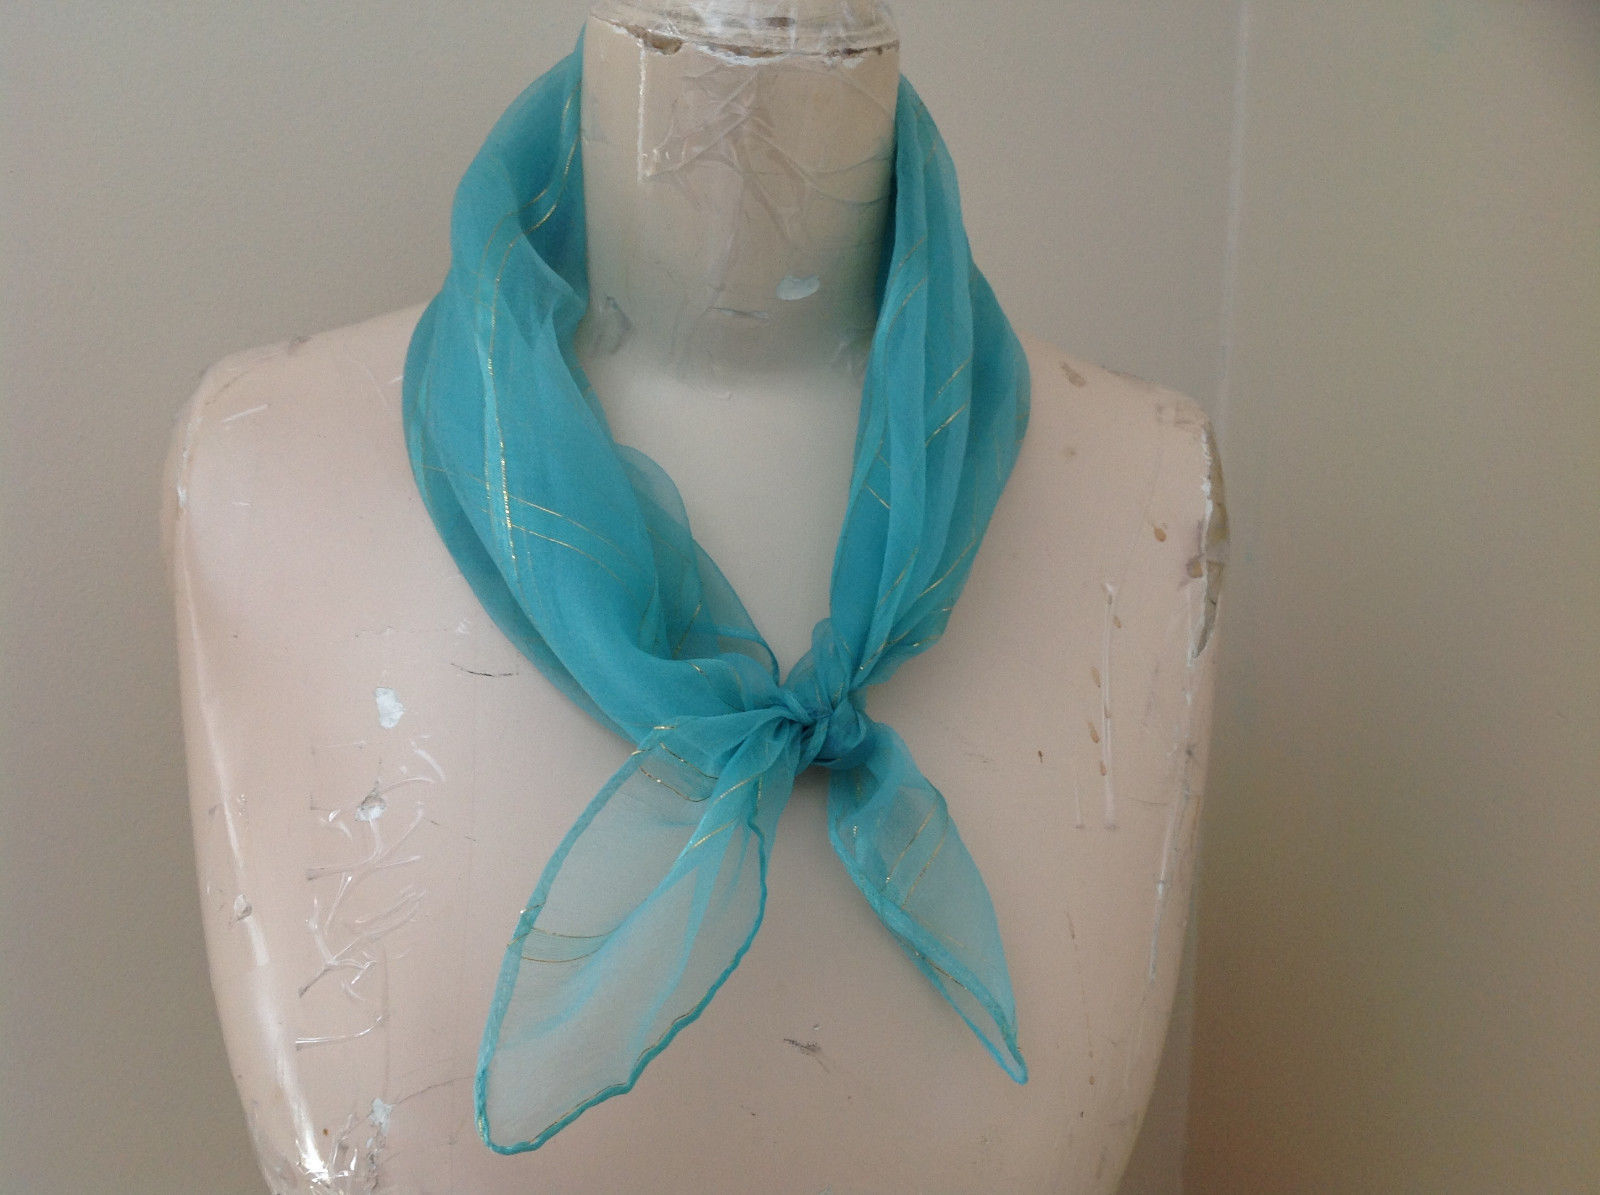 Sea Green with Gold Stripe Line Pattern Square Scarf Light and Sheer Material